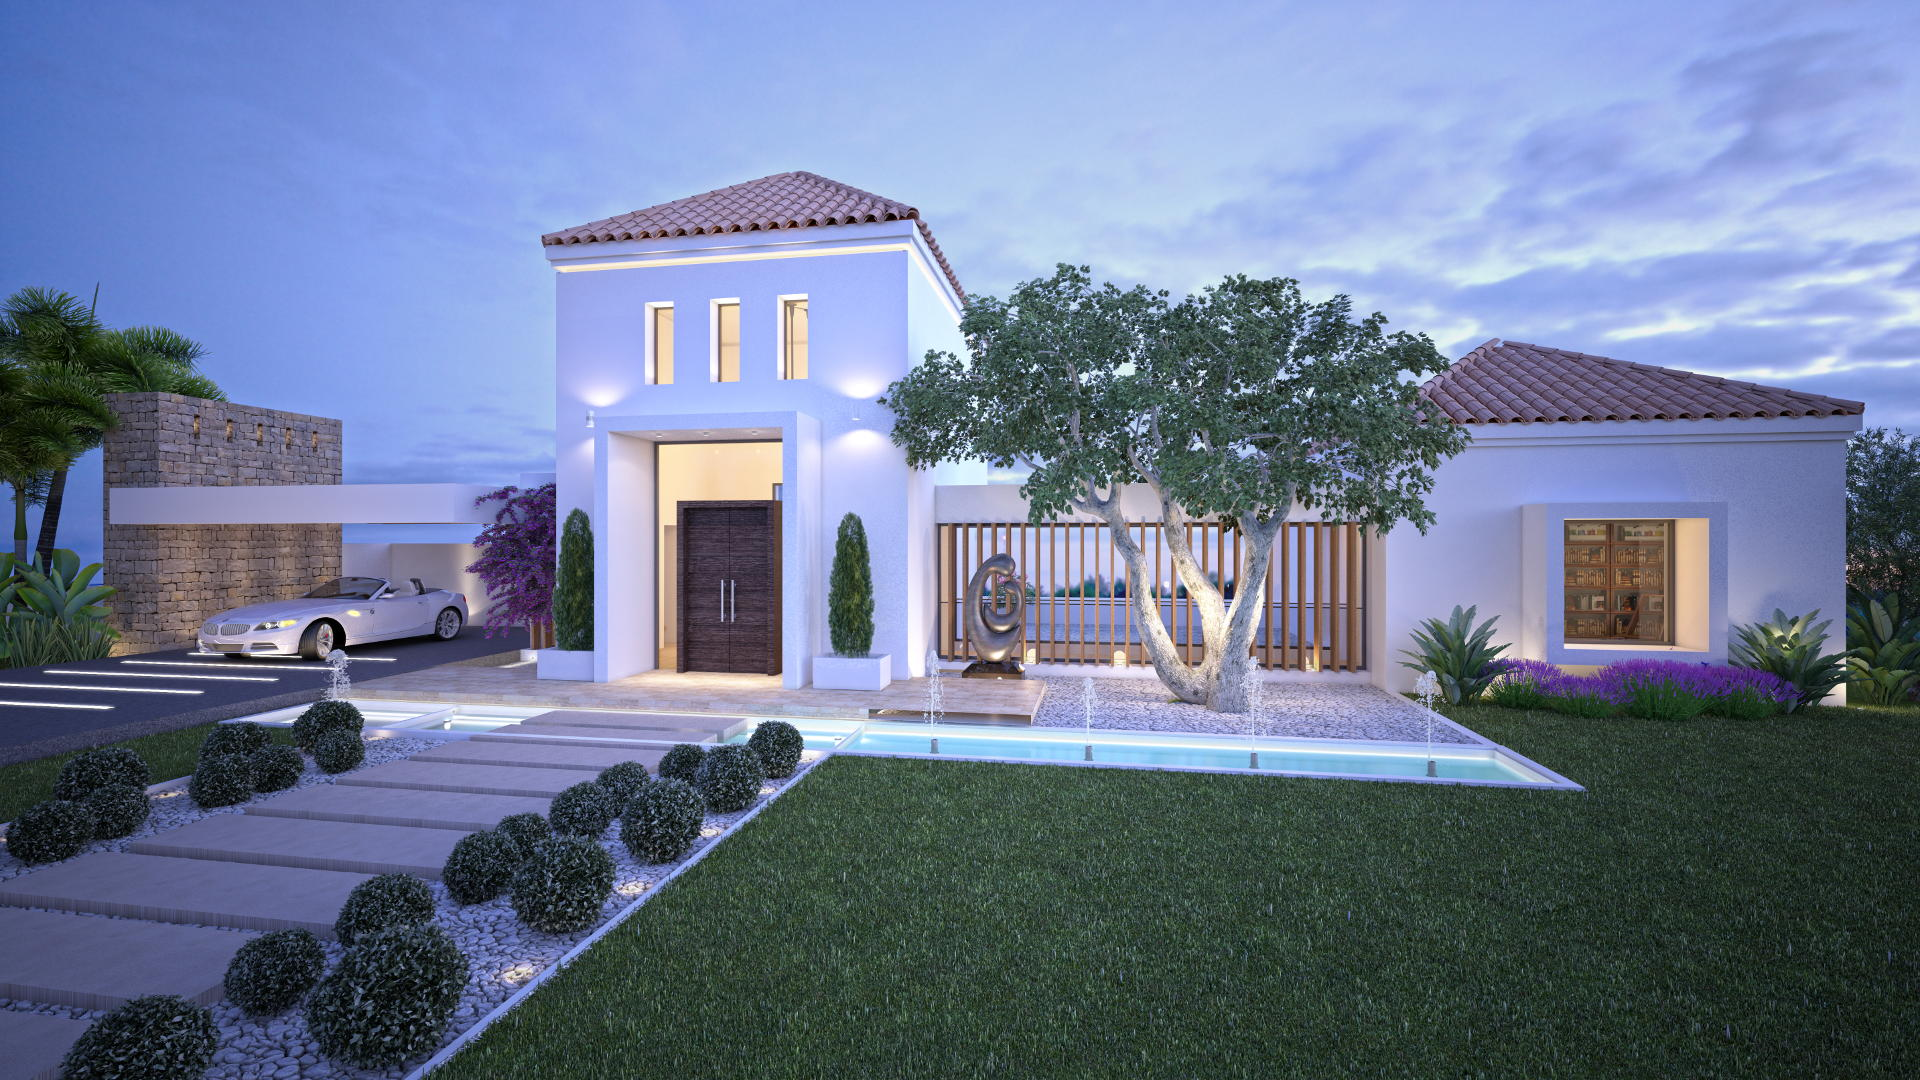 The heights estepona brand new luxury villa for sale for Best modern homes in the world